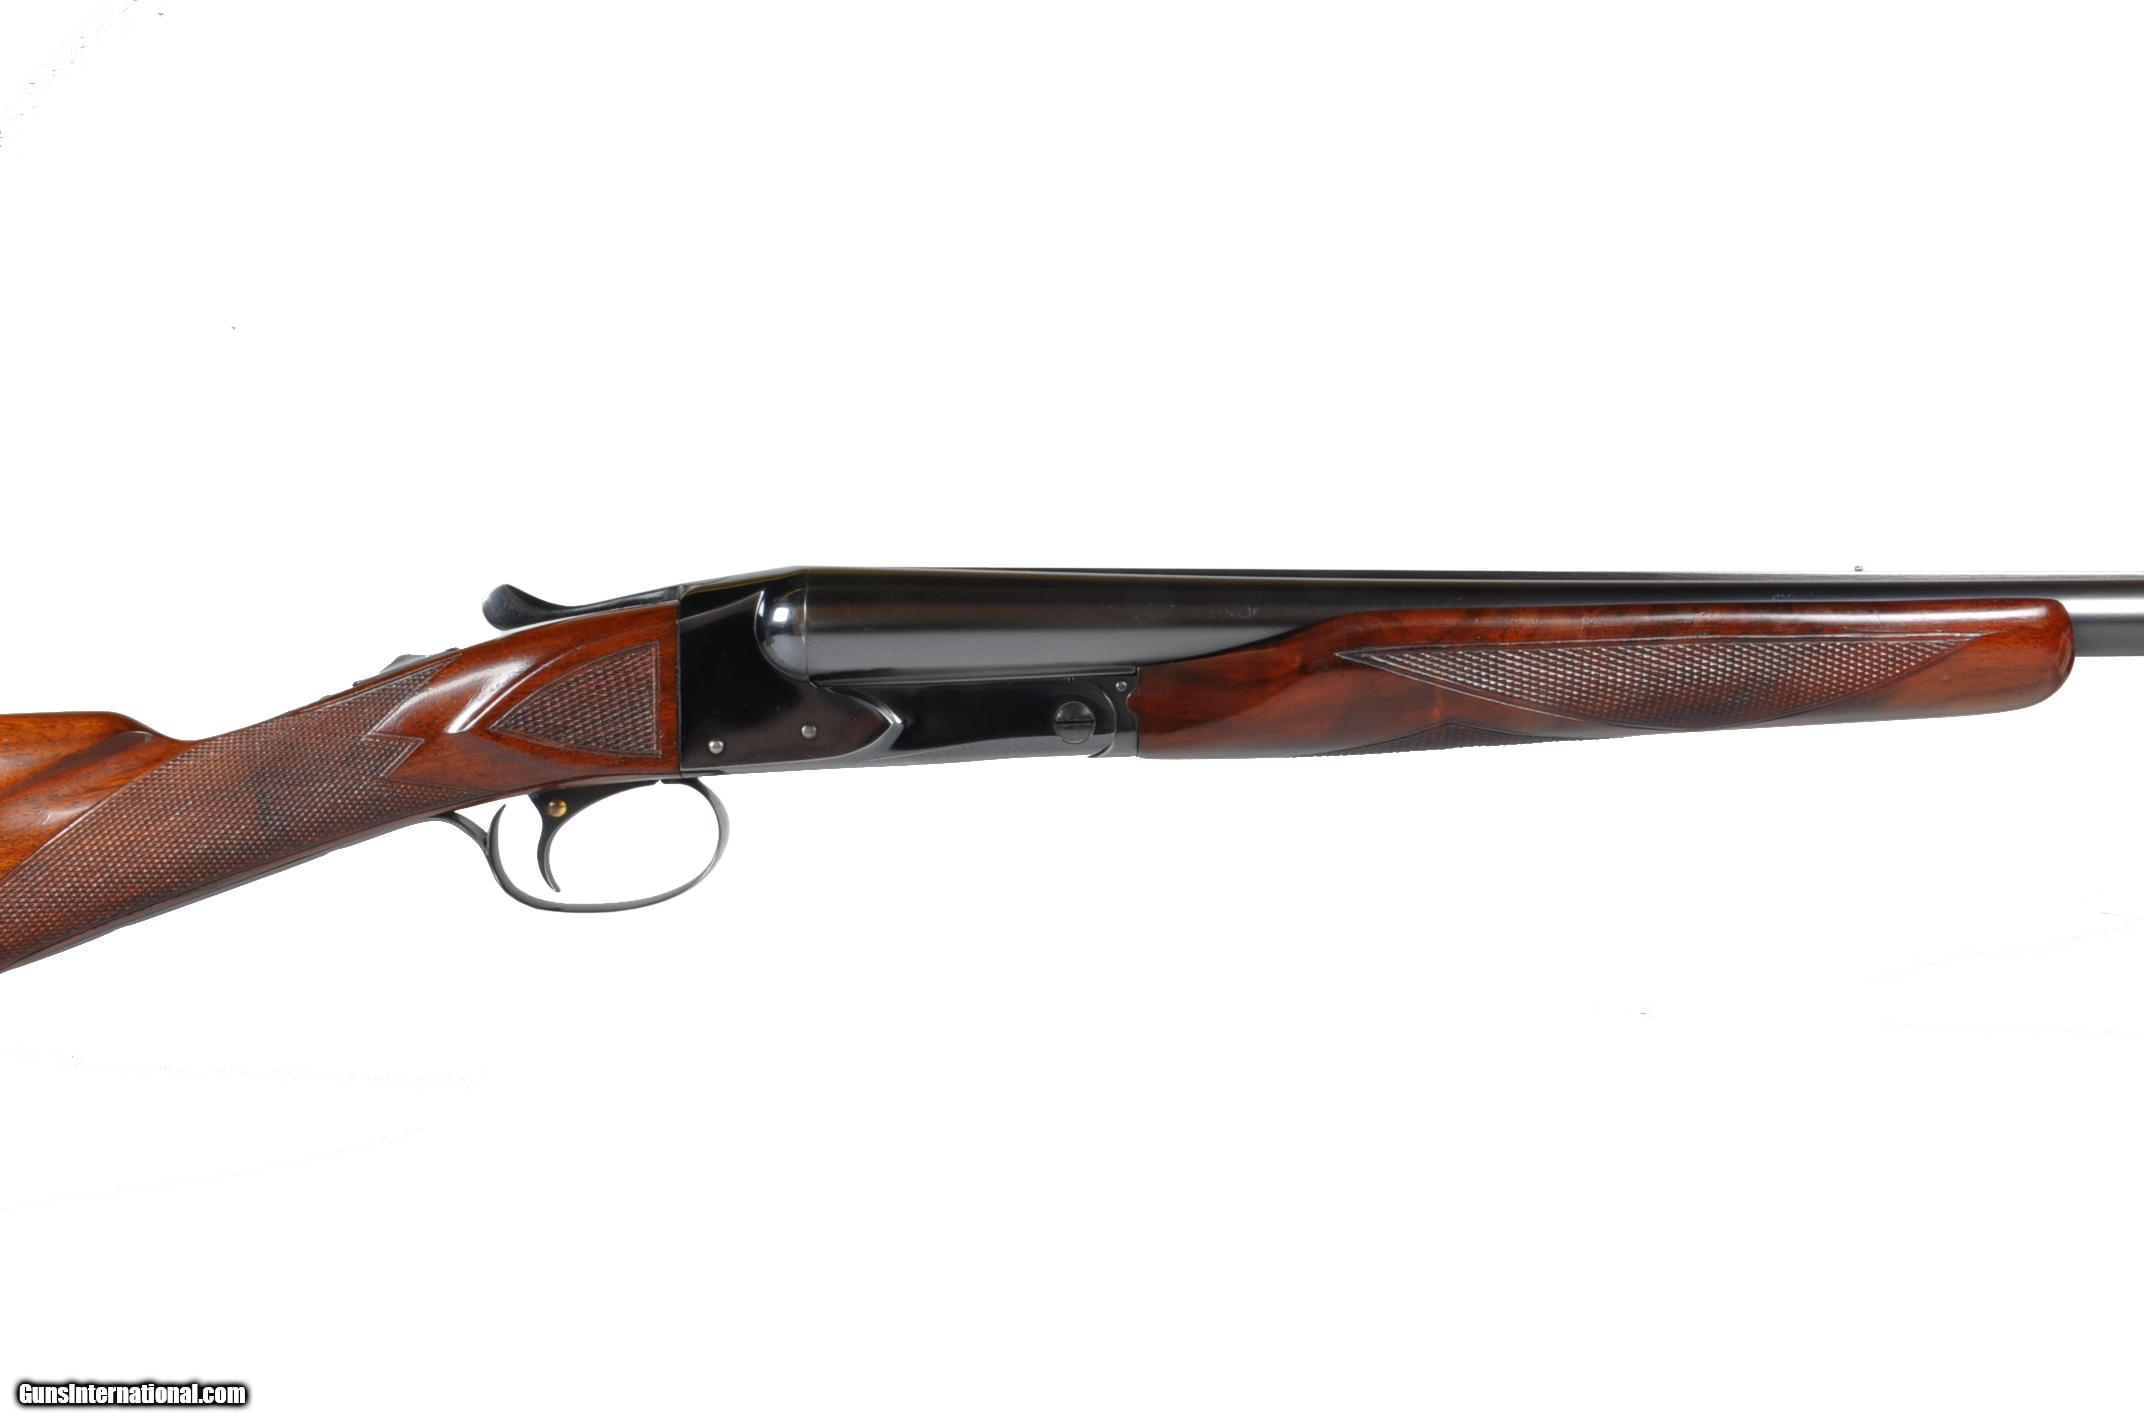 winchester model 21 skeet 12 gauge 28 barrels straight stock